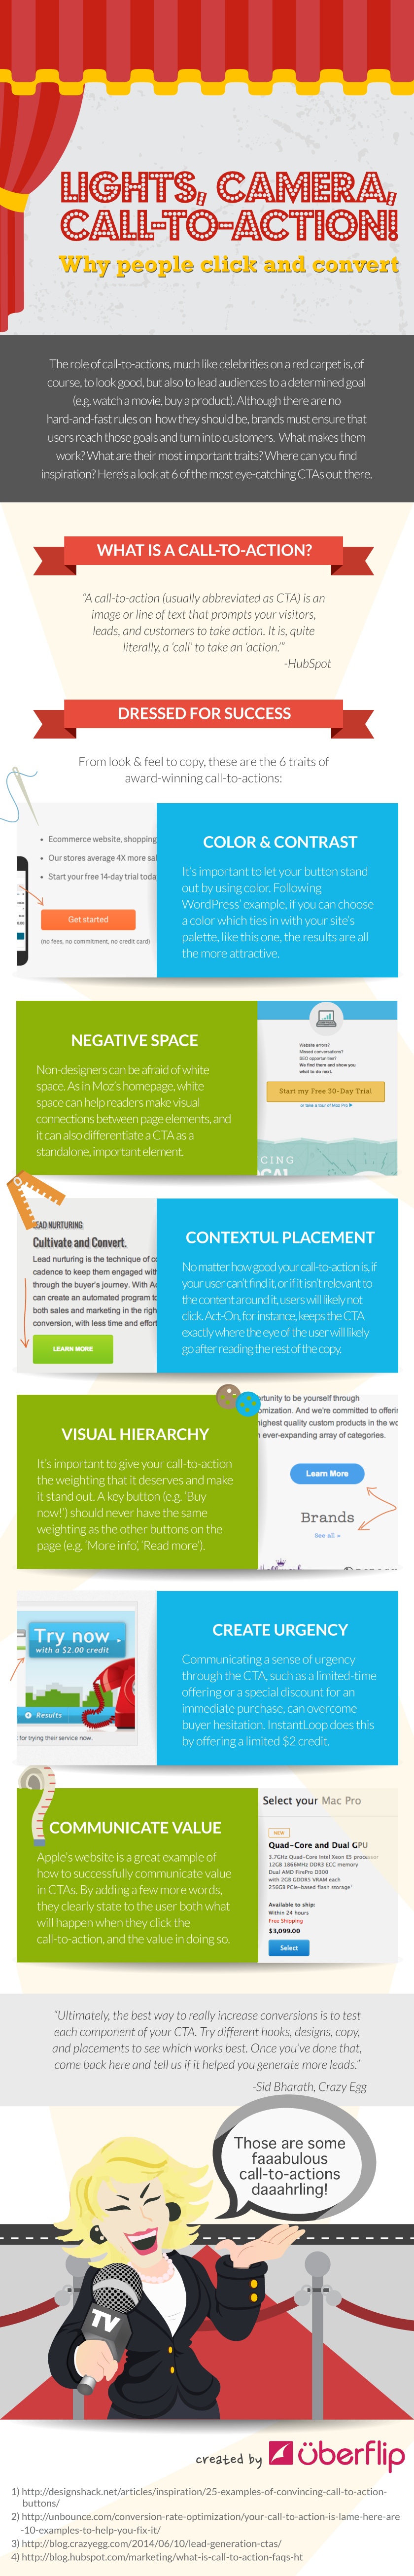 Lights, Camera, Call-To-Action: Why People Click and Convert - infographic - sales and marketing tips for blog and websites